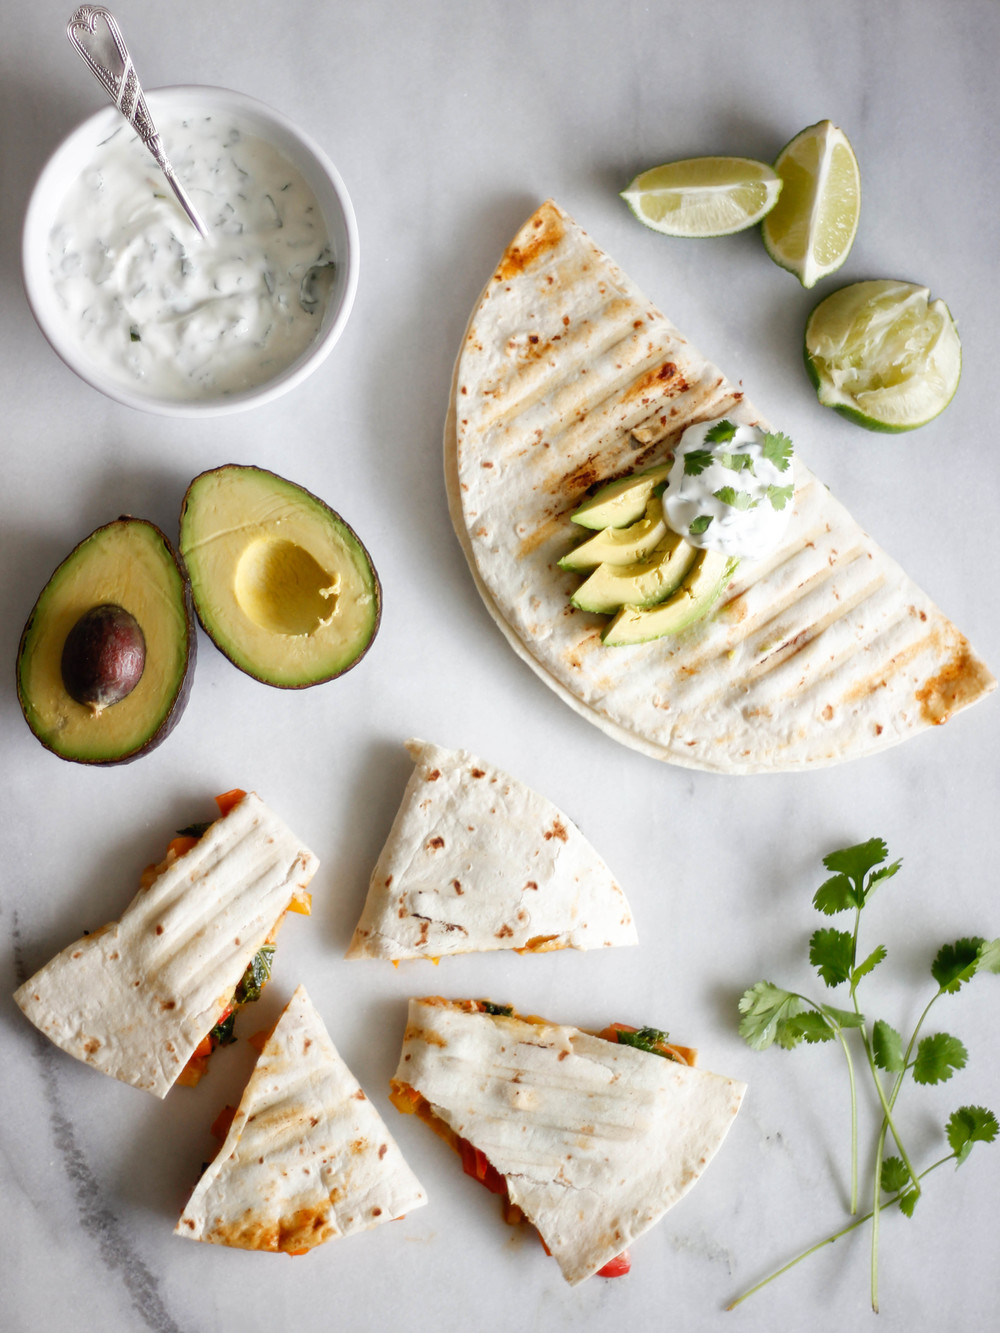 Shrimp Fajita Quesadillas with Cilantro Lime Sauce | Jennifer Diaz